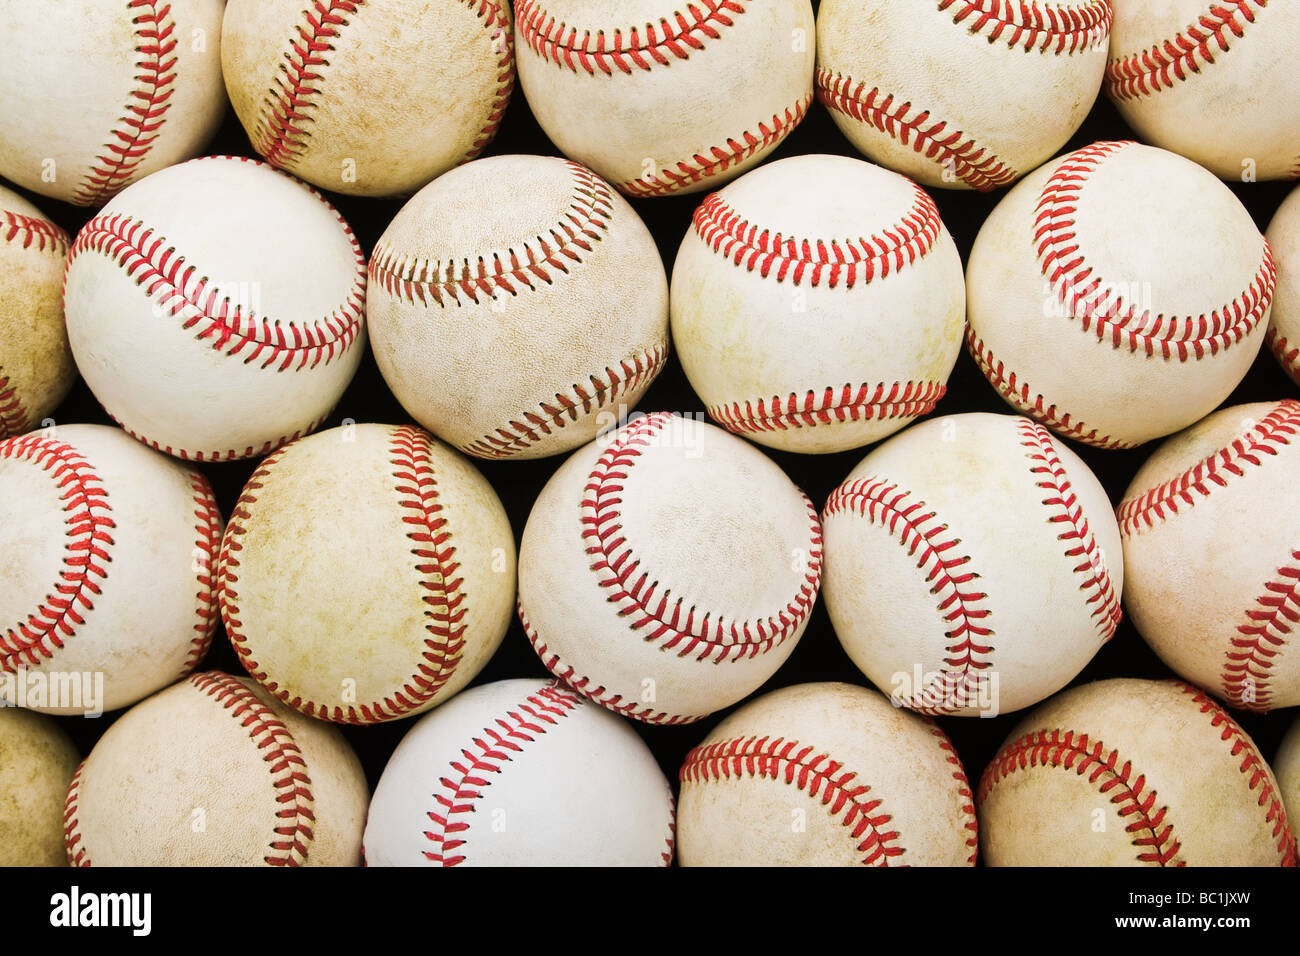 Downward view of group of used worn baseballs in tight rows, filling the whole image. - Stock Image